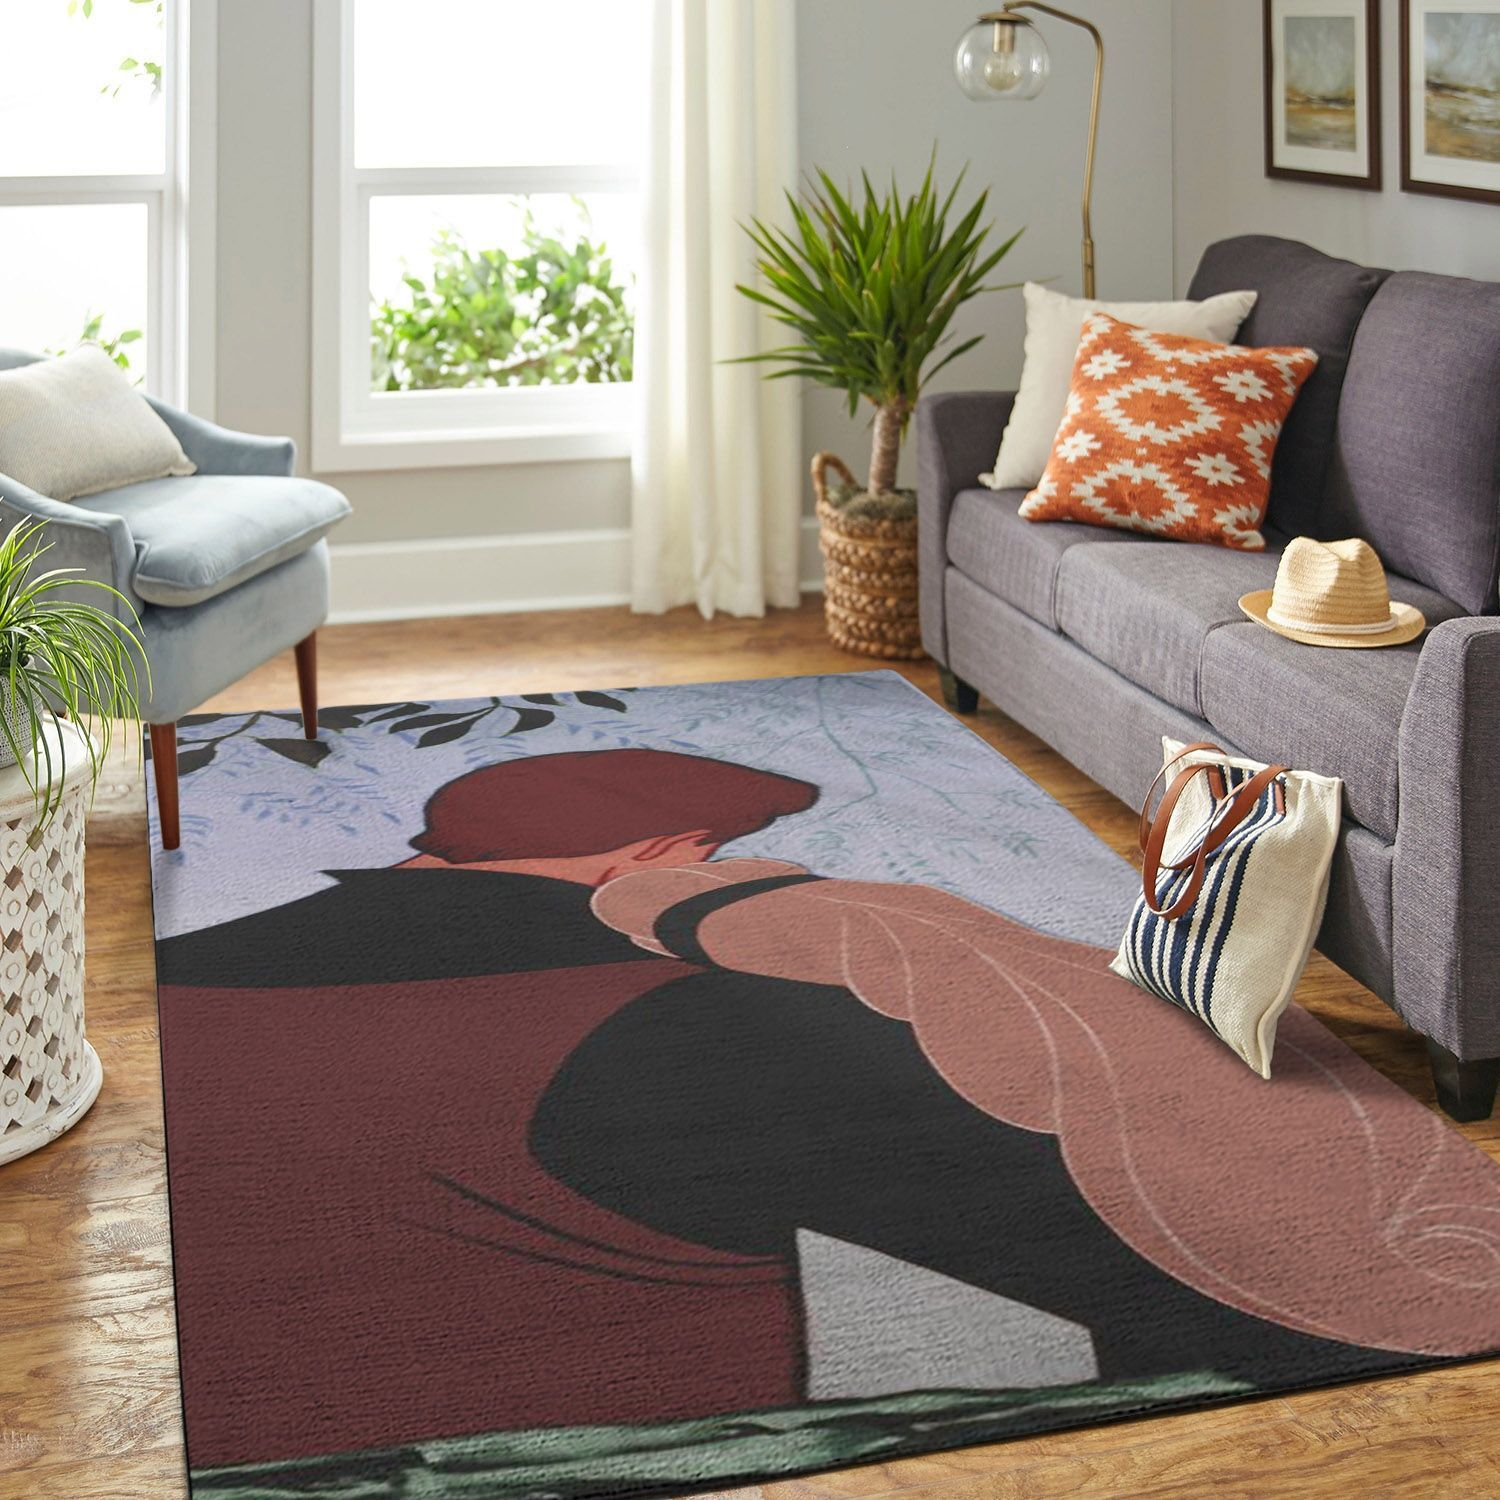 Amazon Sleeping Princess Aurora Living Room Area No6519 Rug